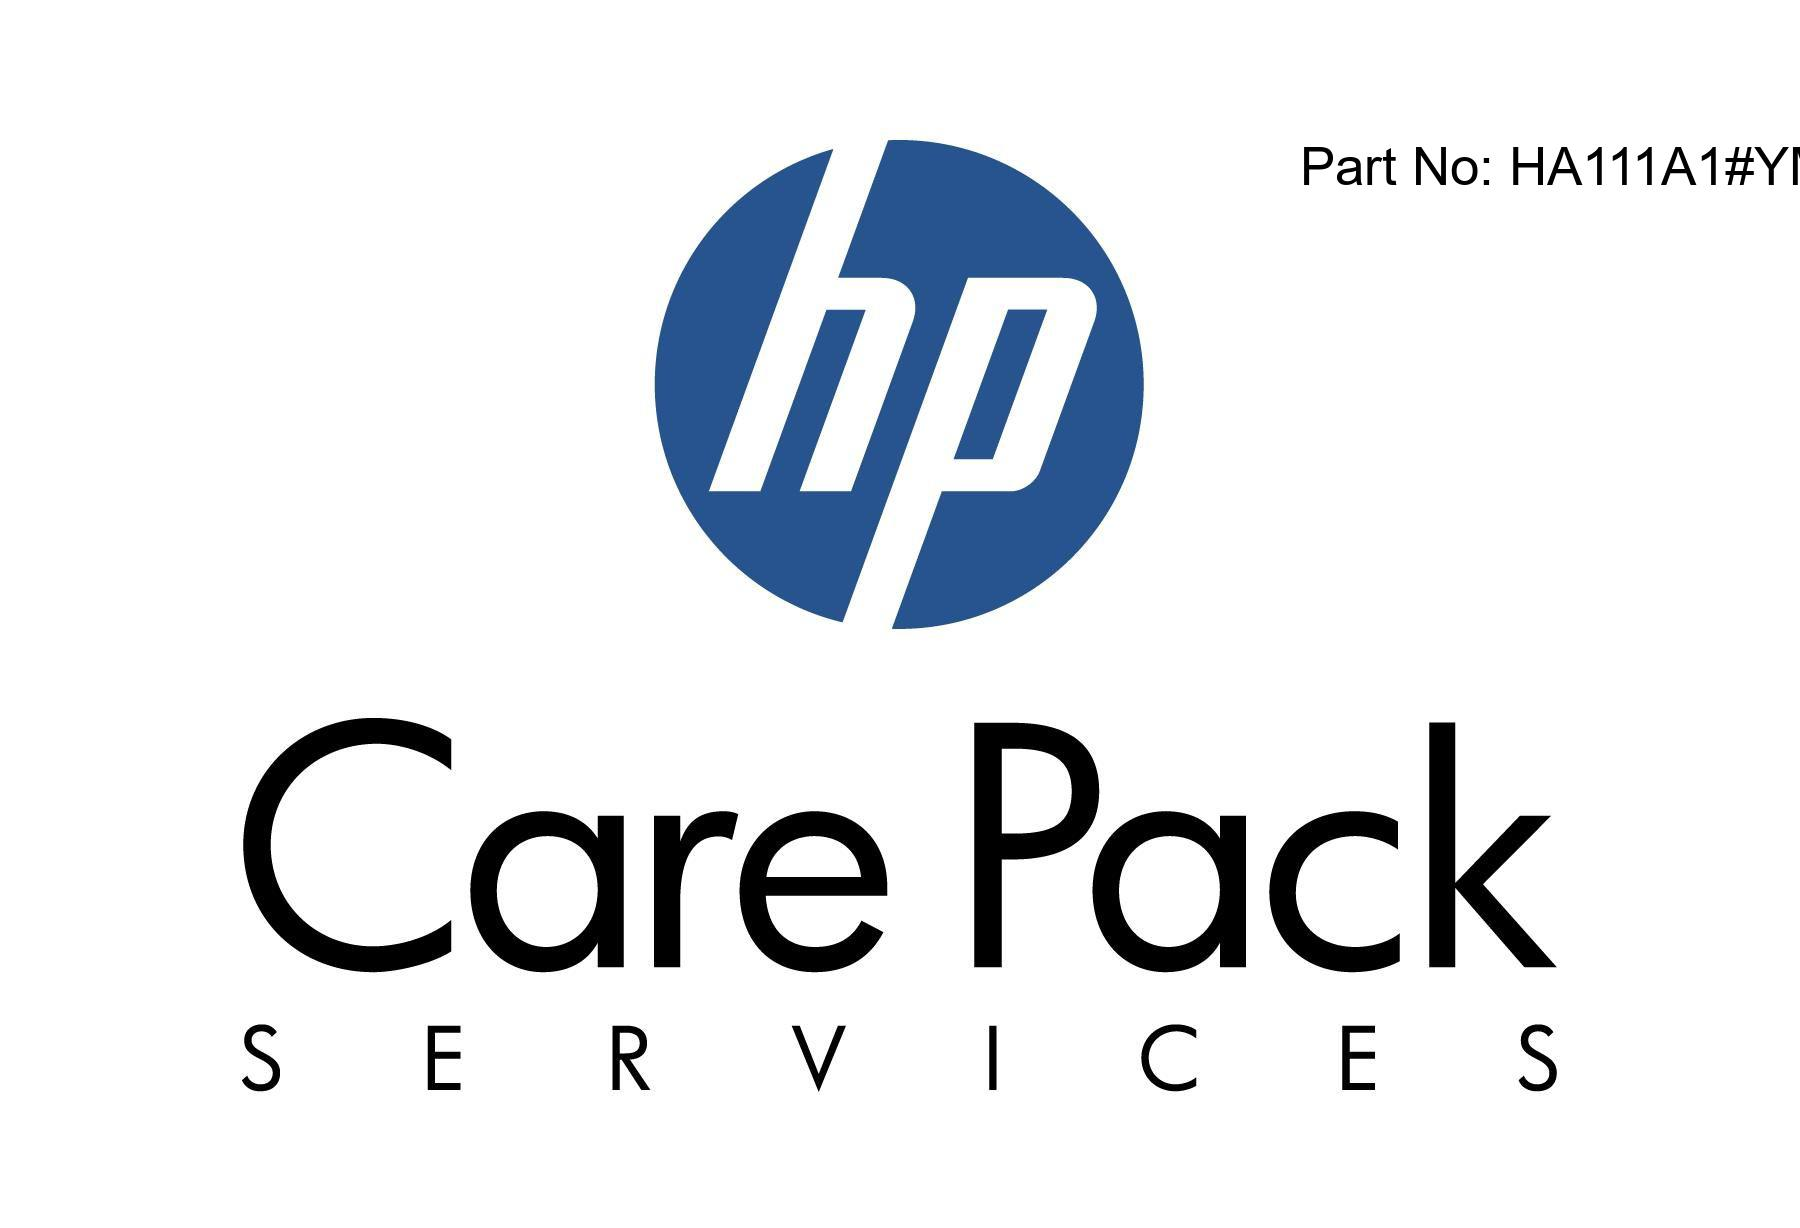 Proactive 24 - Technical support - for HPE XP7 Continuous Access to Three Data Center High Availability - 1 TB capacity - 101-250 TB - phone consulting - 1 year - 24x7 - response time: 2 h